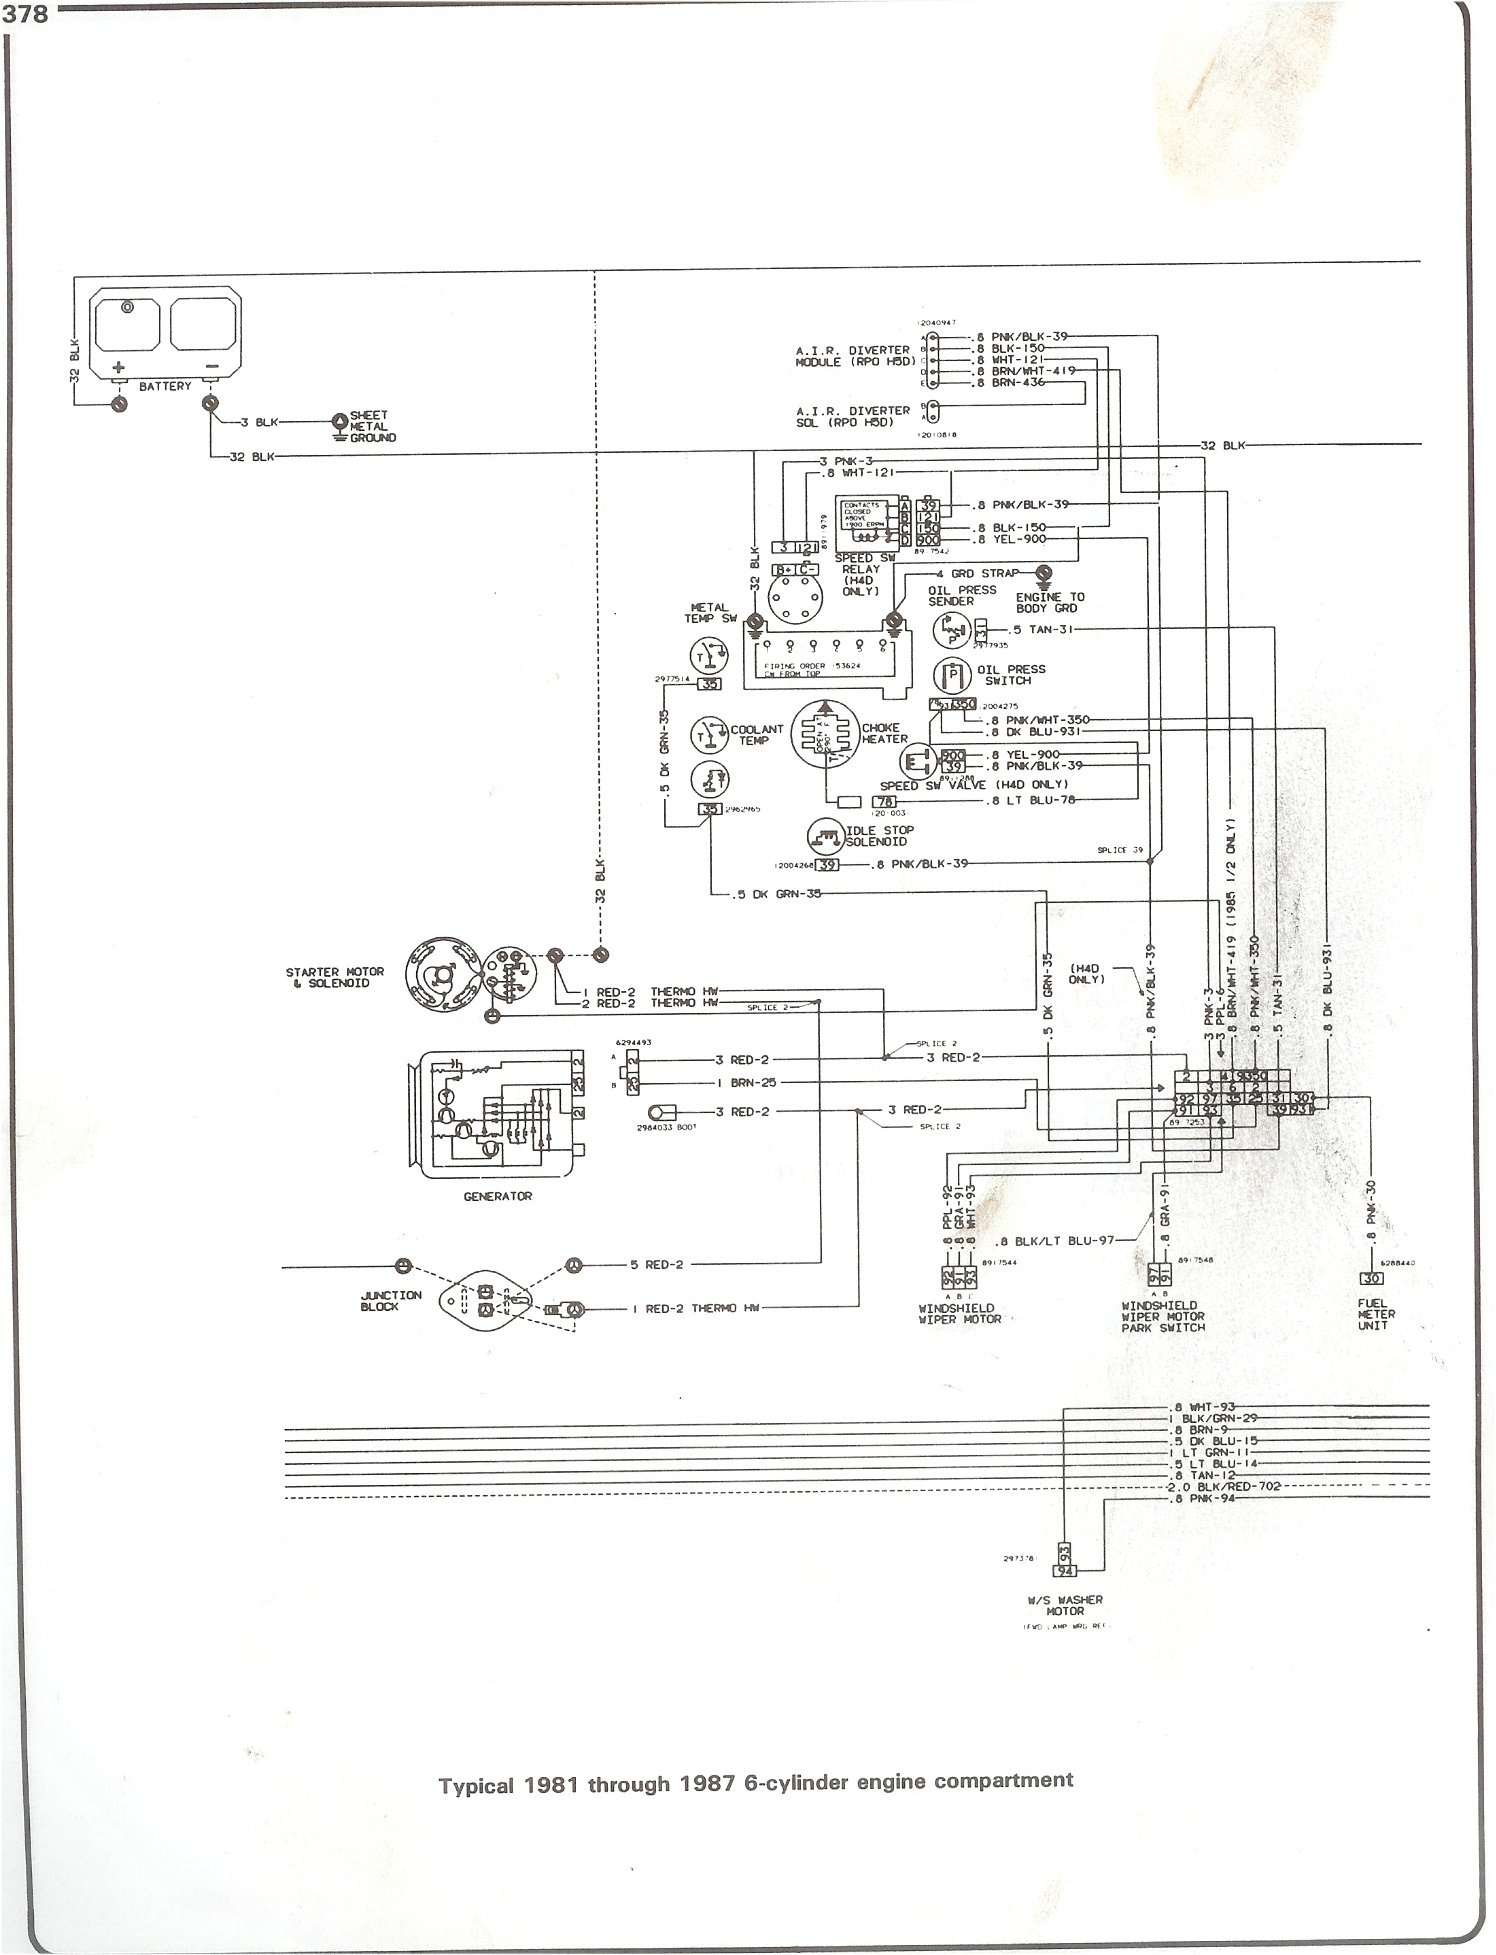 [SCHEMATICS_4US]  7F78C42 Boat Instrument Panel Wiring Diagrams Diagram Schematic | Wiring  Library | Jon Boat Wiring Diagram |  | Wiring Library